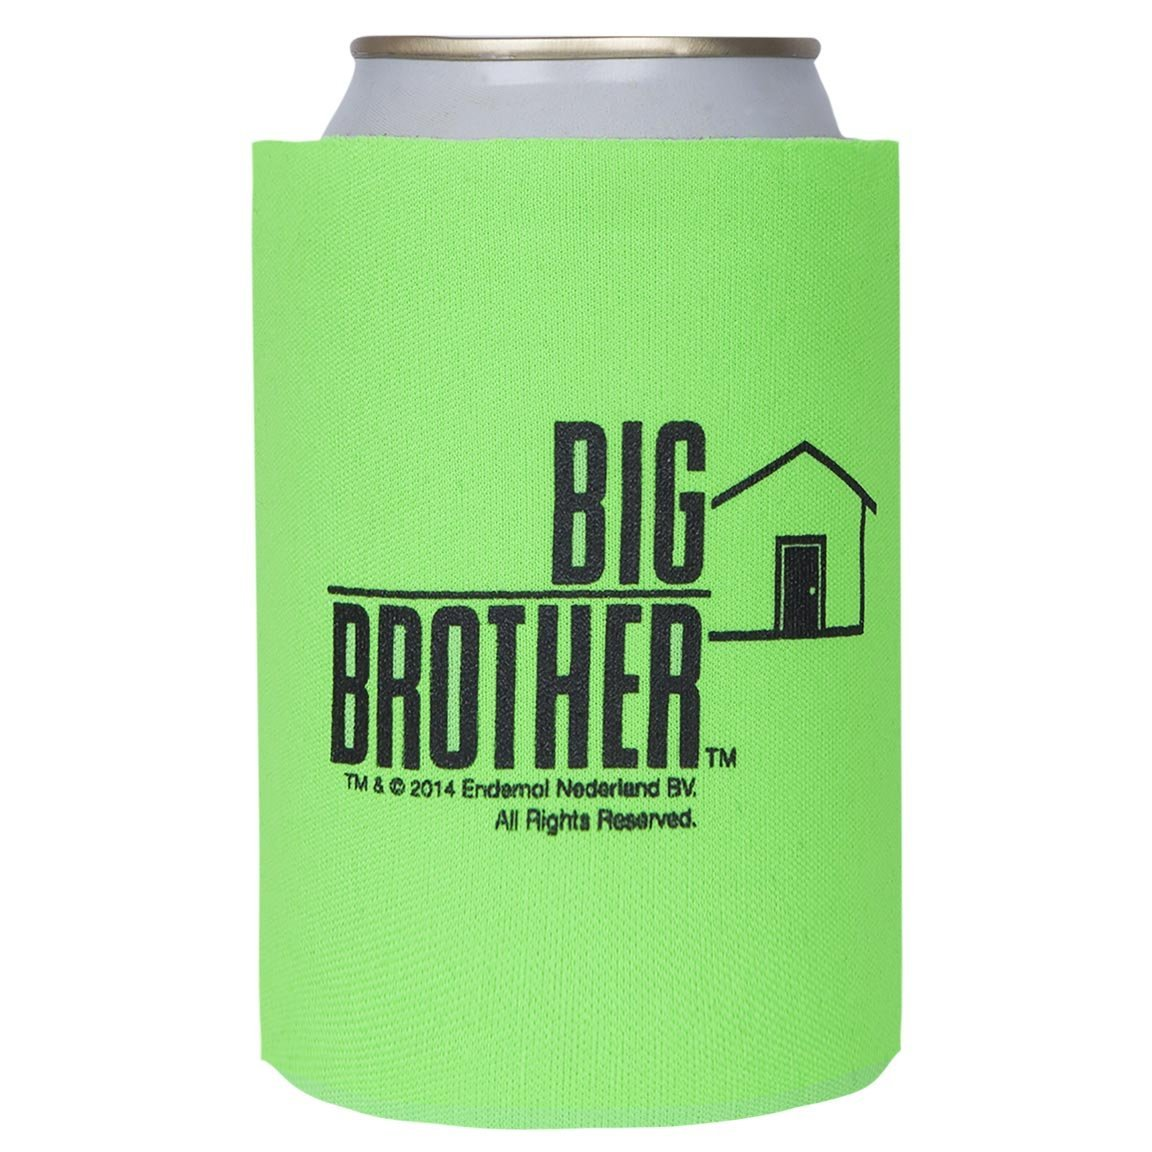 Big Brother Collapsible Can Cooler Green Image